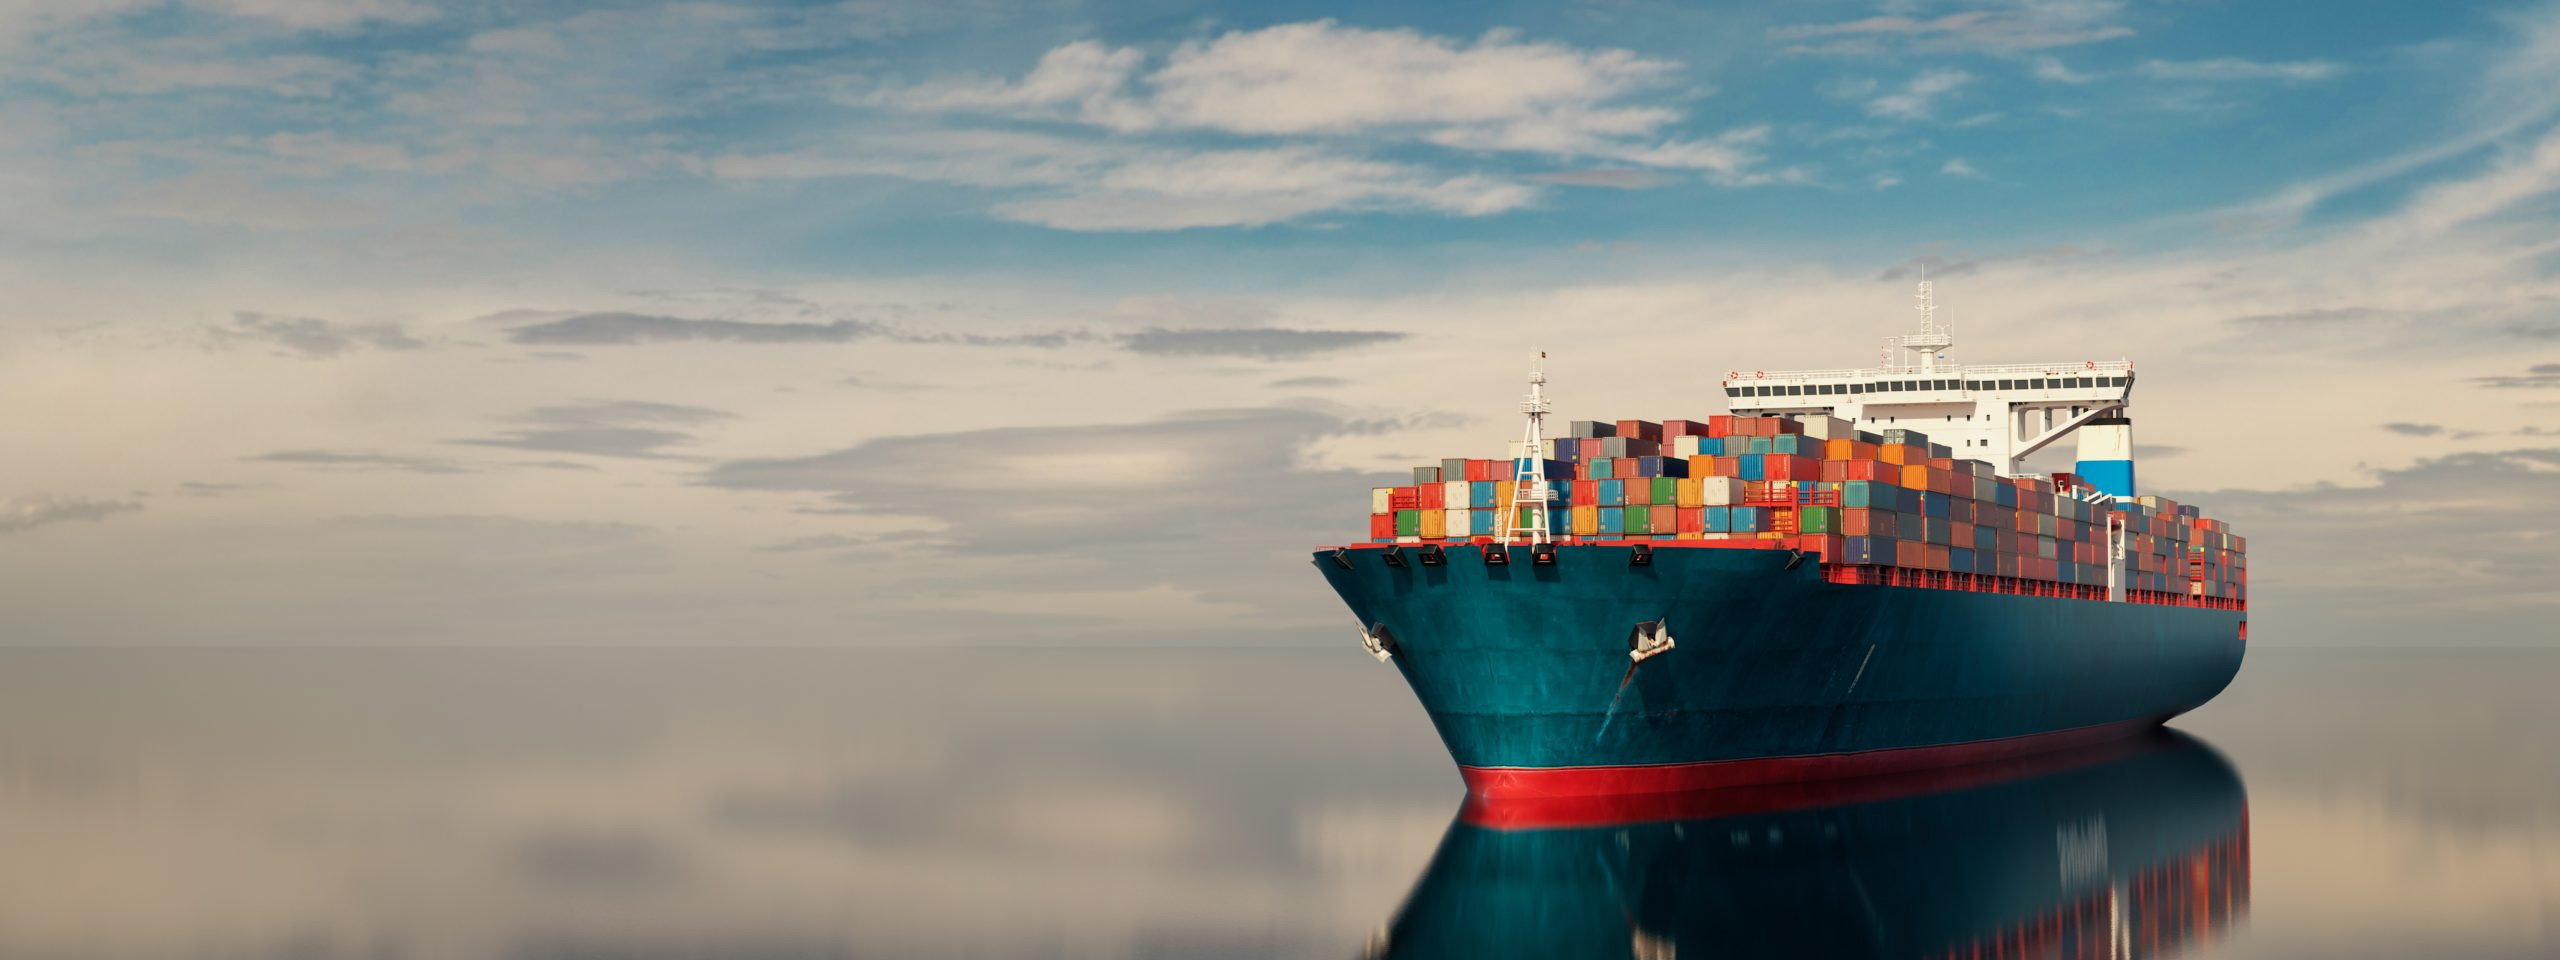 How to Find Freight Shippers For Freight Forwarders